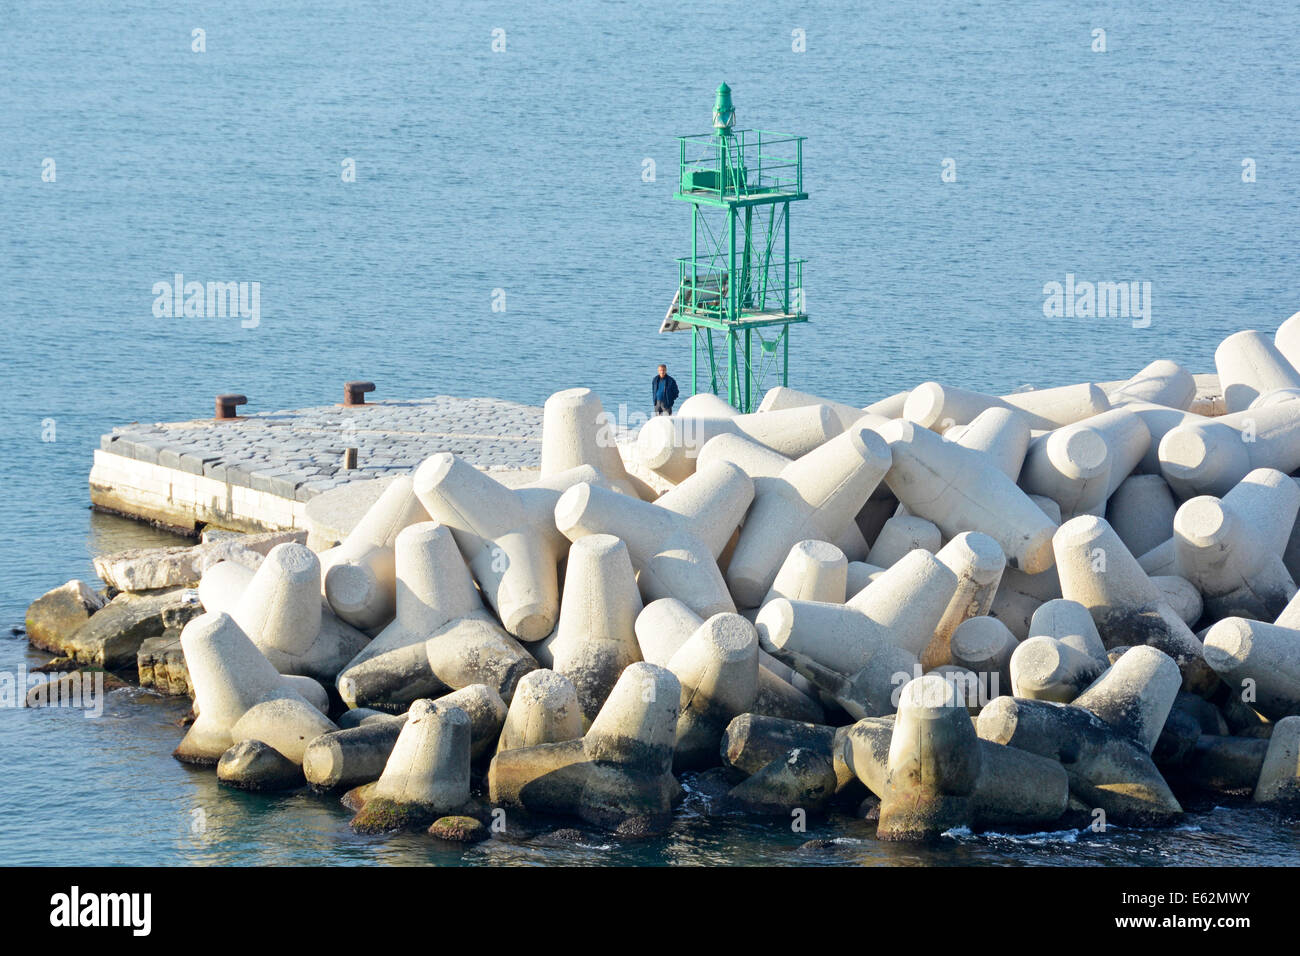 Man standing beside Dolosse precast concrete blocks in breakwater to protect  green channel marker on the harbour - Stock Image